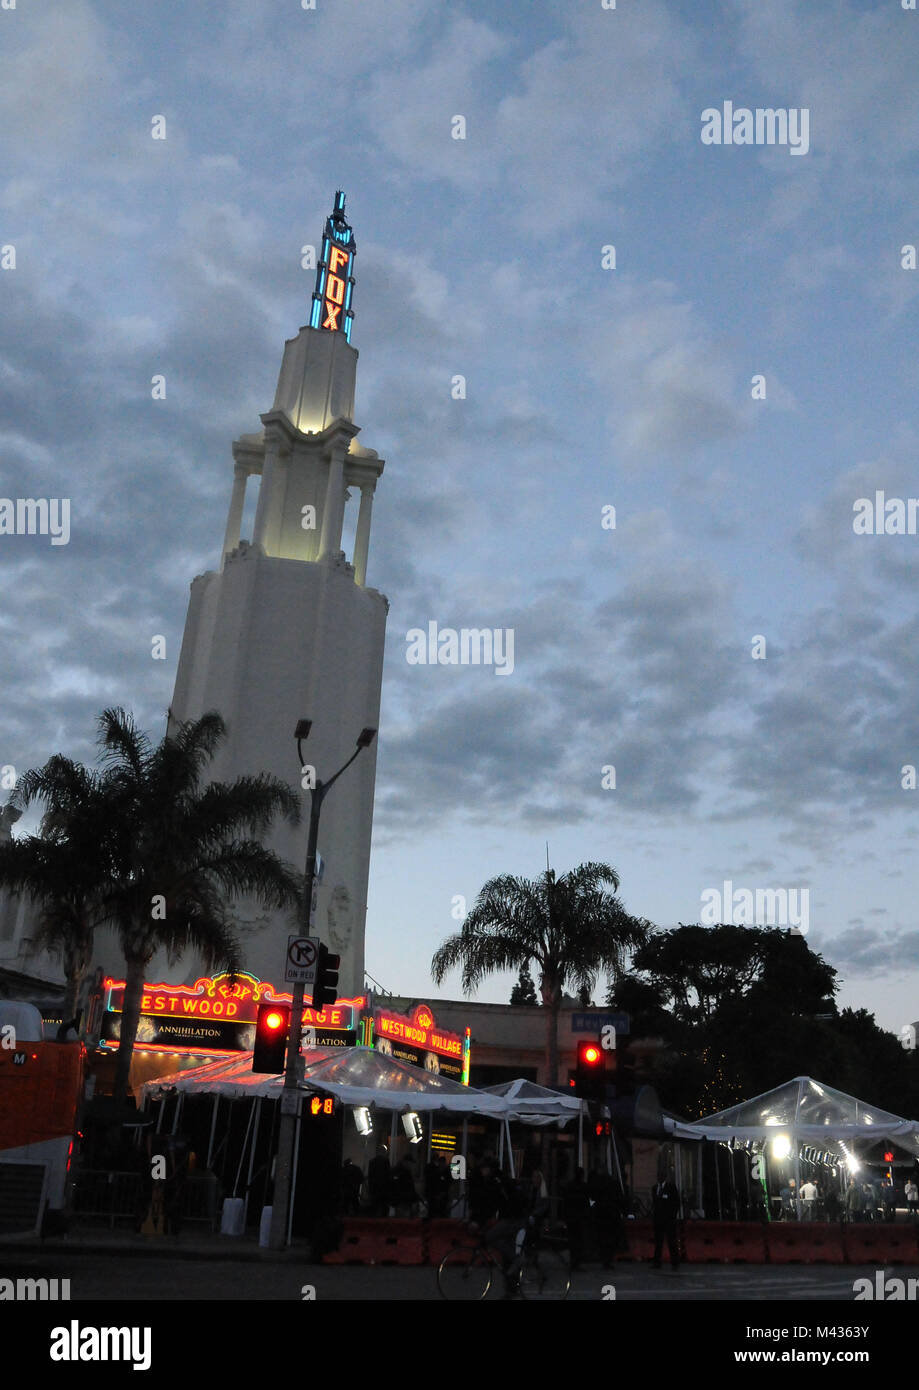 Los Angeles, California, USA. 13th February, 2018. A general view of atmosphere at the LA Premiere of 'Annihilation' Stock Photo